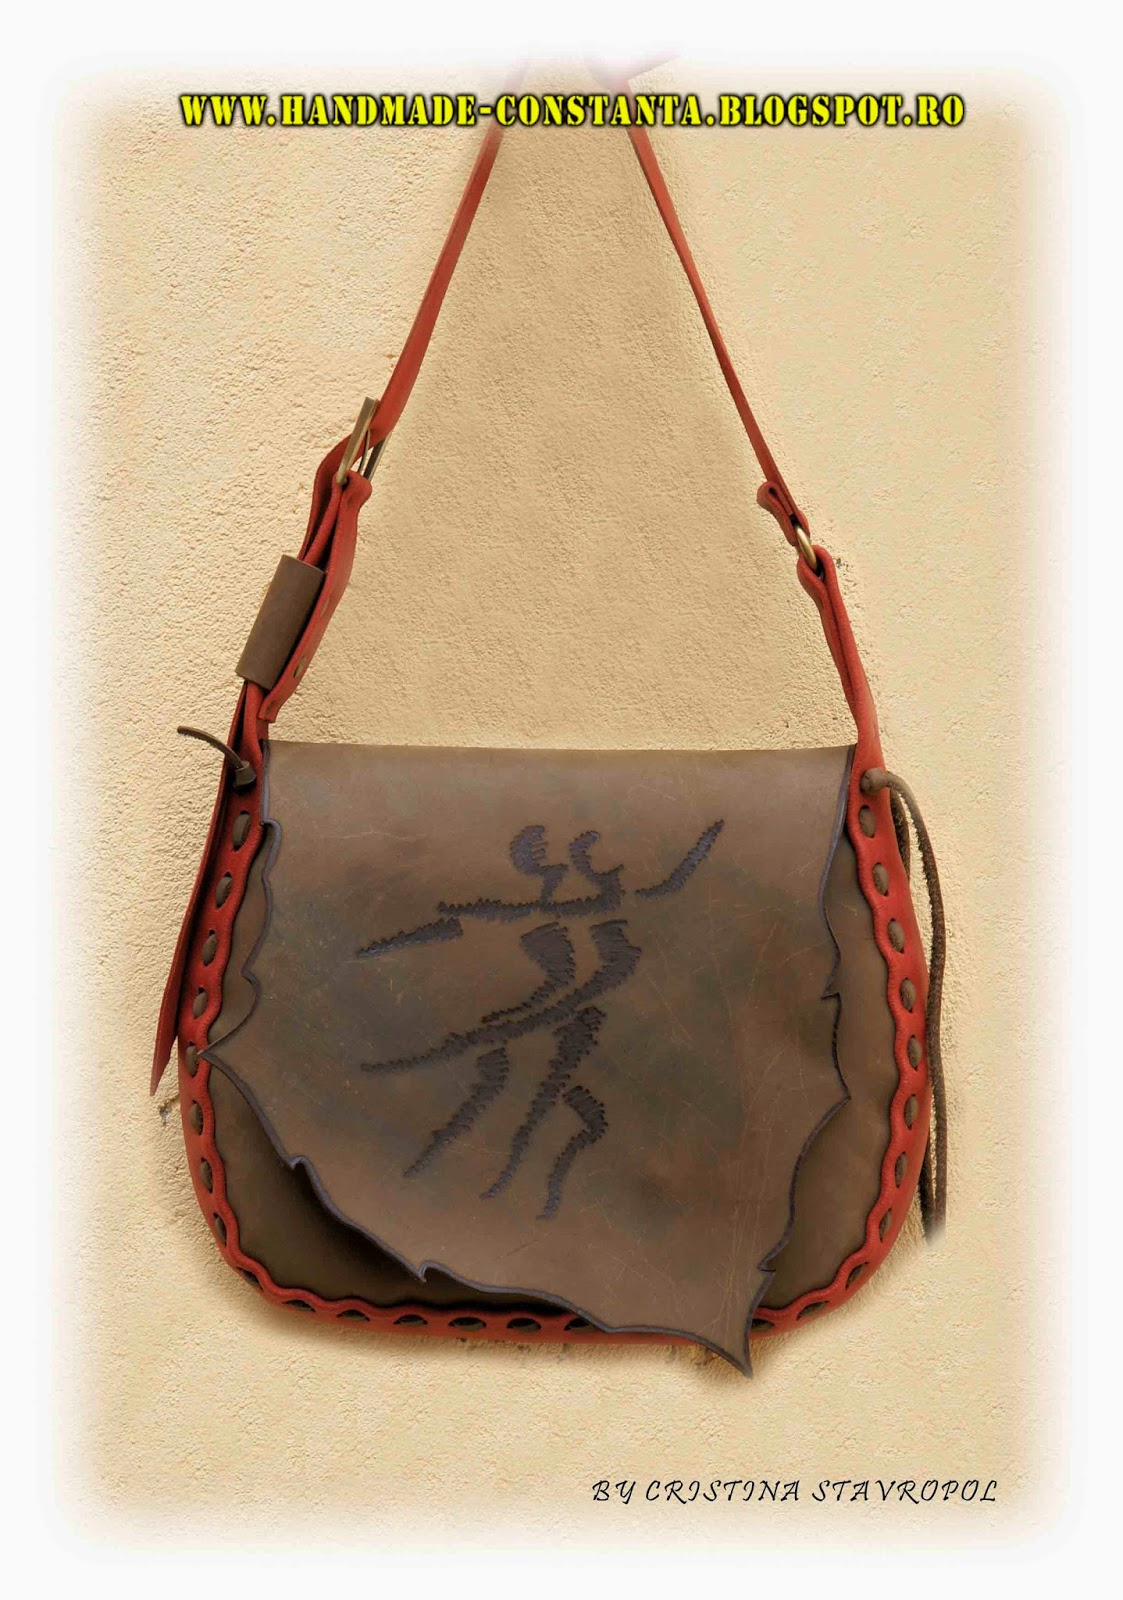 Bag - brown leather.